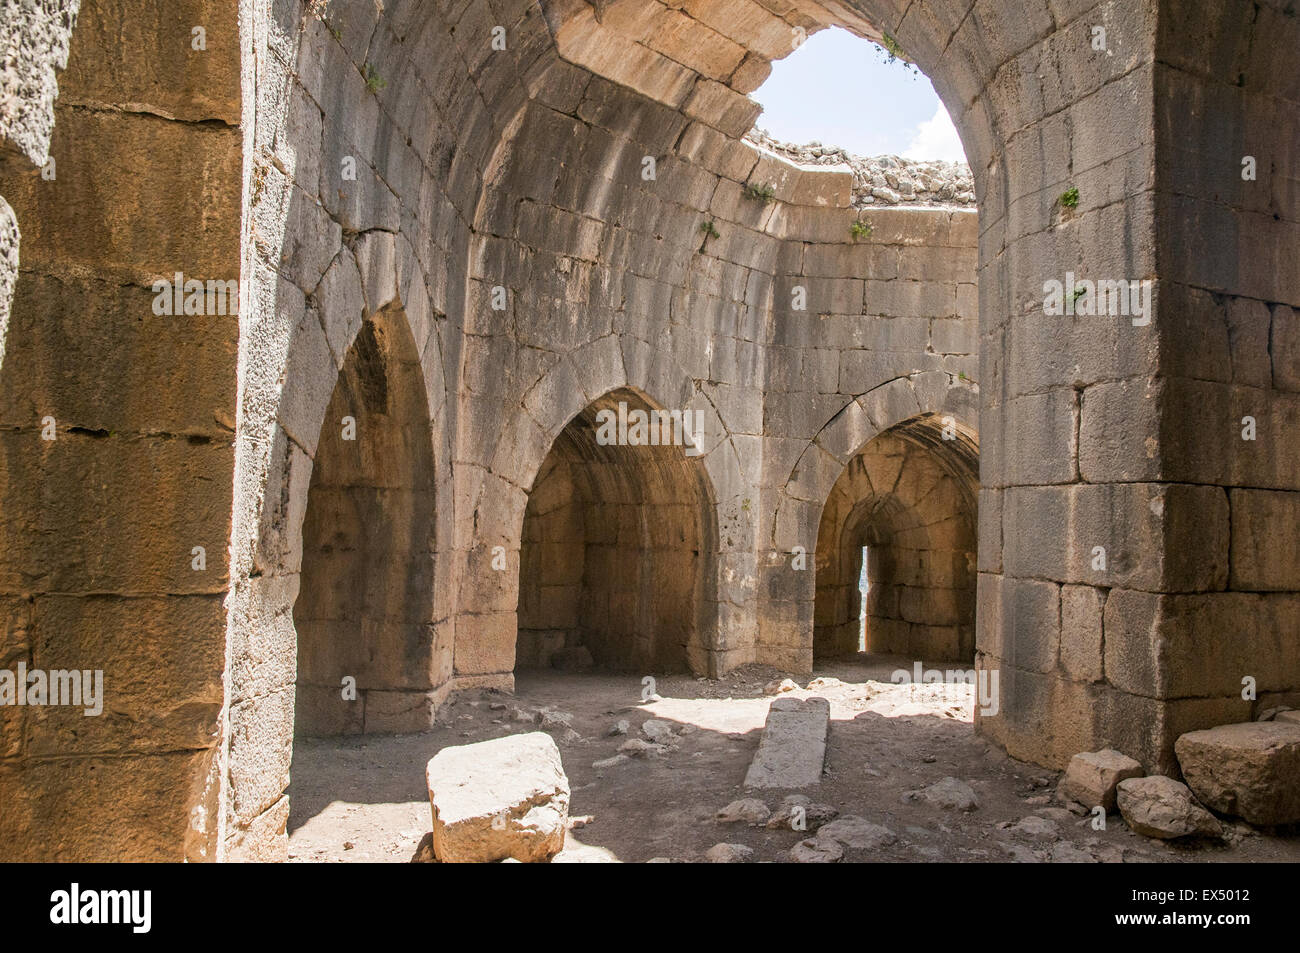 The Octagonal tower. Nimrod (Namrud) Fortress or Nimrod Castle is a medieval Muslim castle situated on the southern - Stock Image